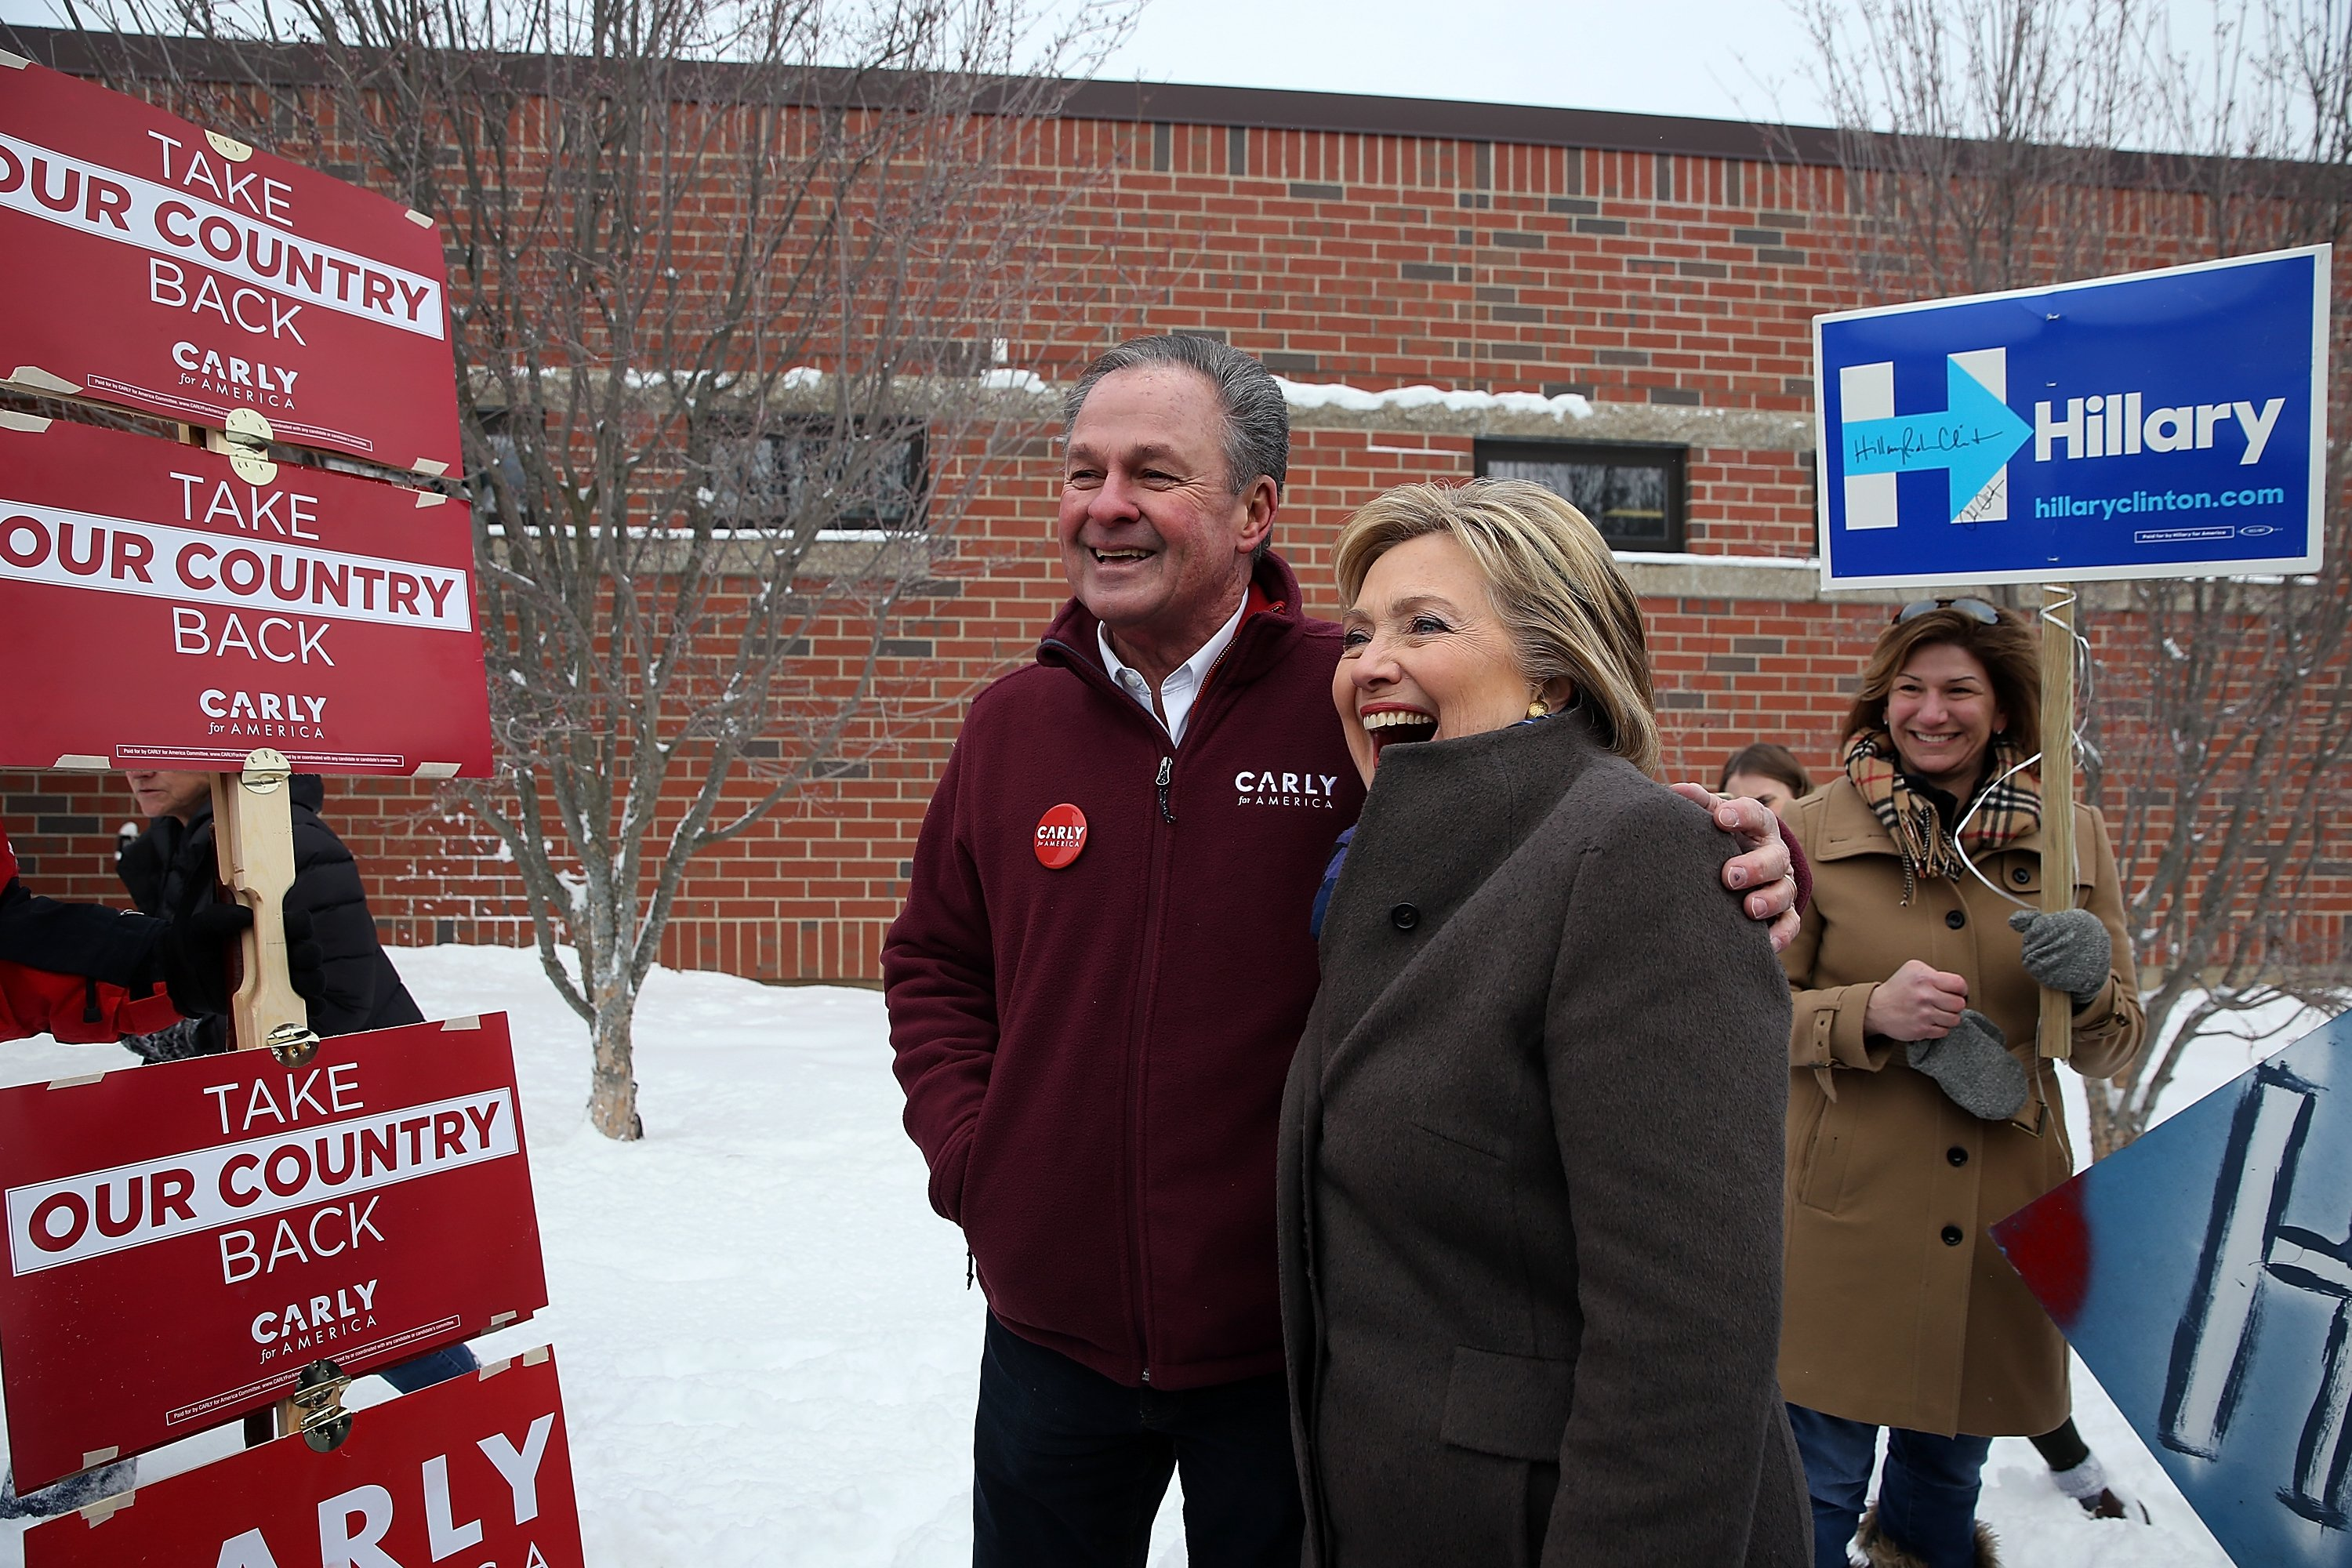 Hillary Clinton poses for a picture with Frank Fiorina in Derry, NH on Feb. 9, 2016.